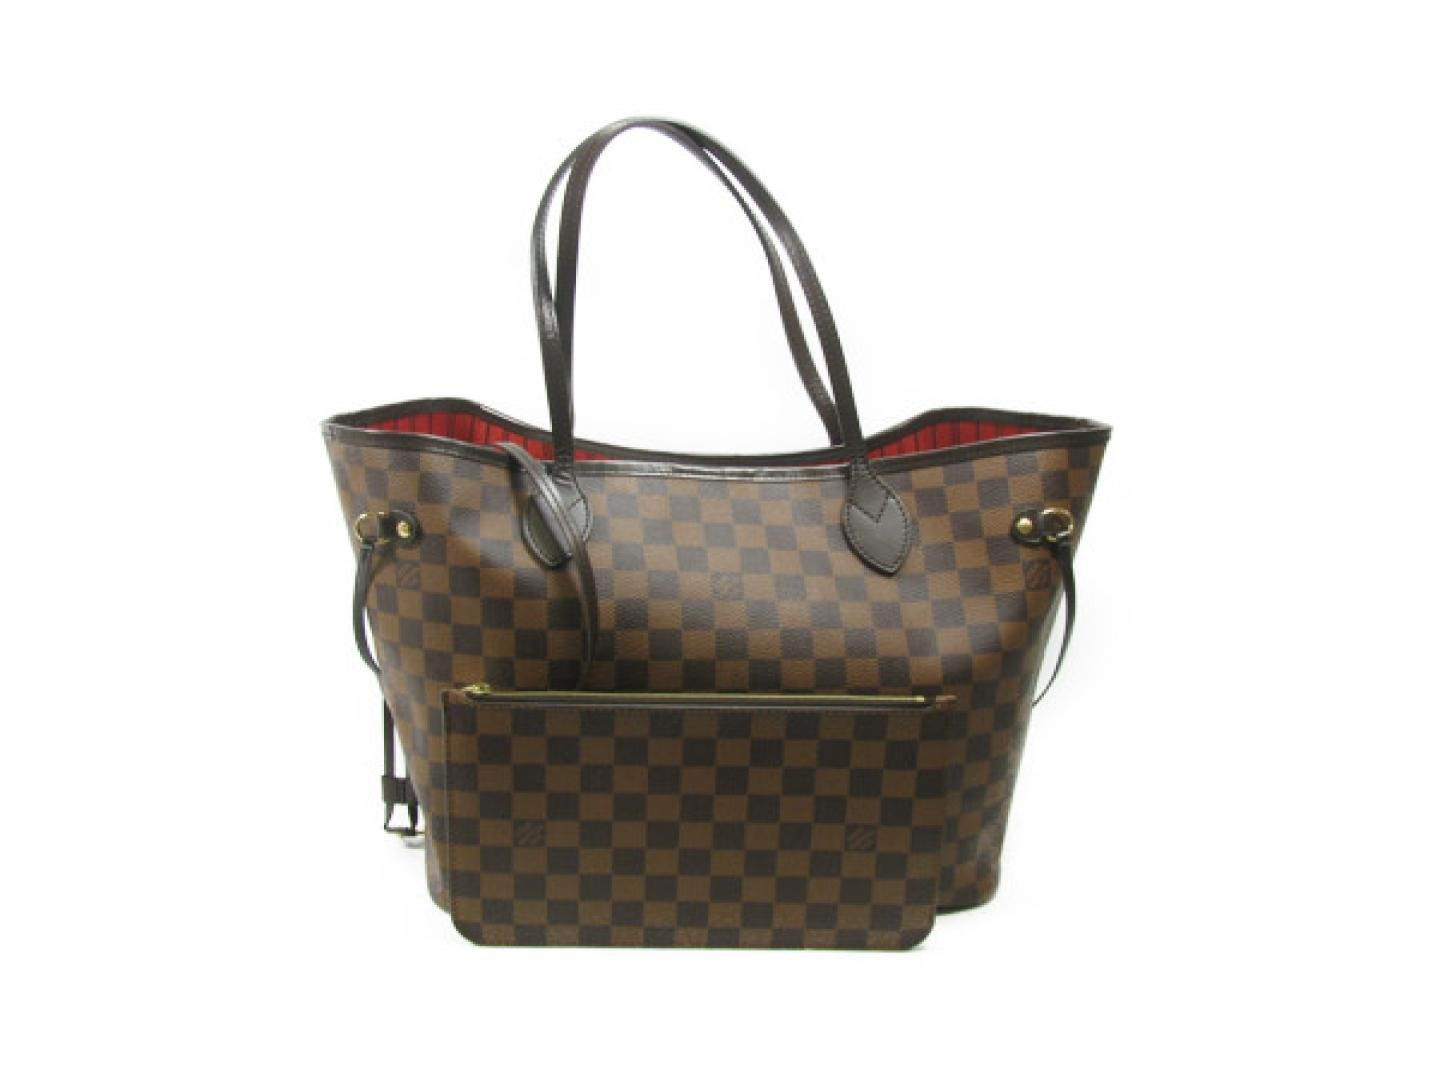 90c47759b655 Louis Vuitton. Women s Brown Neverfull Mm Shoulder Tote Bag Damier Ebene  Canvas N41358